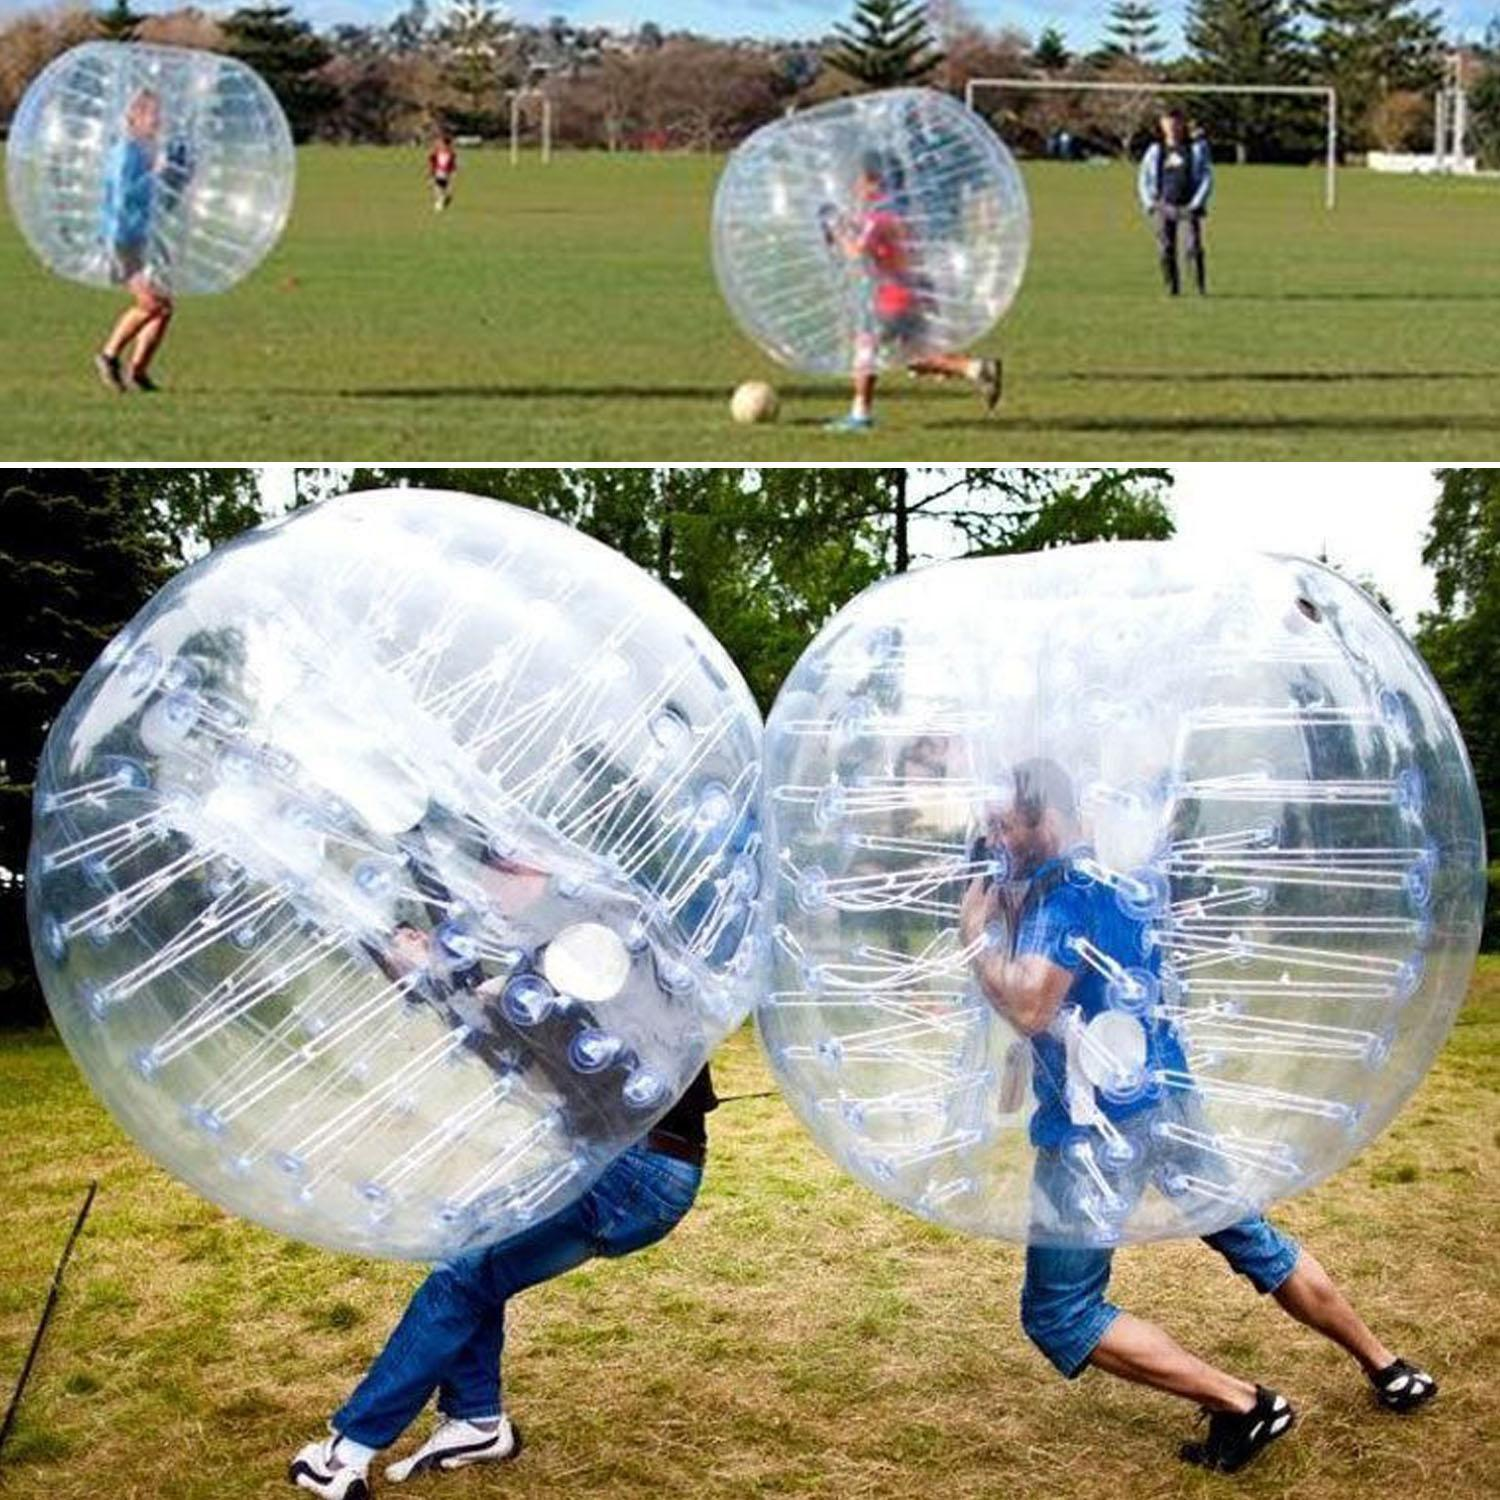 5FT PVC Inflatable Sumo ball Transparent Bumper Balls Body knocker Bubble Soccer zorb ball... by